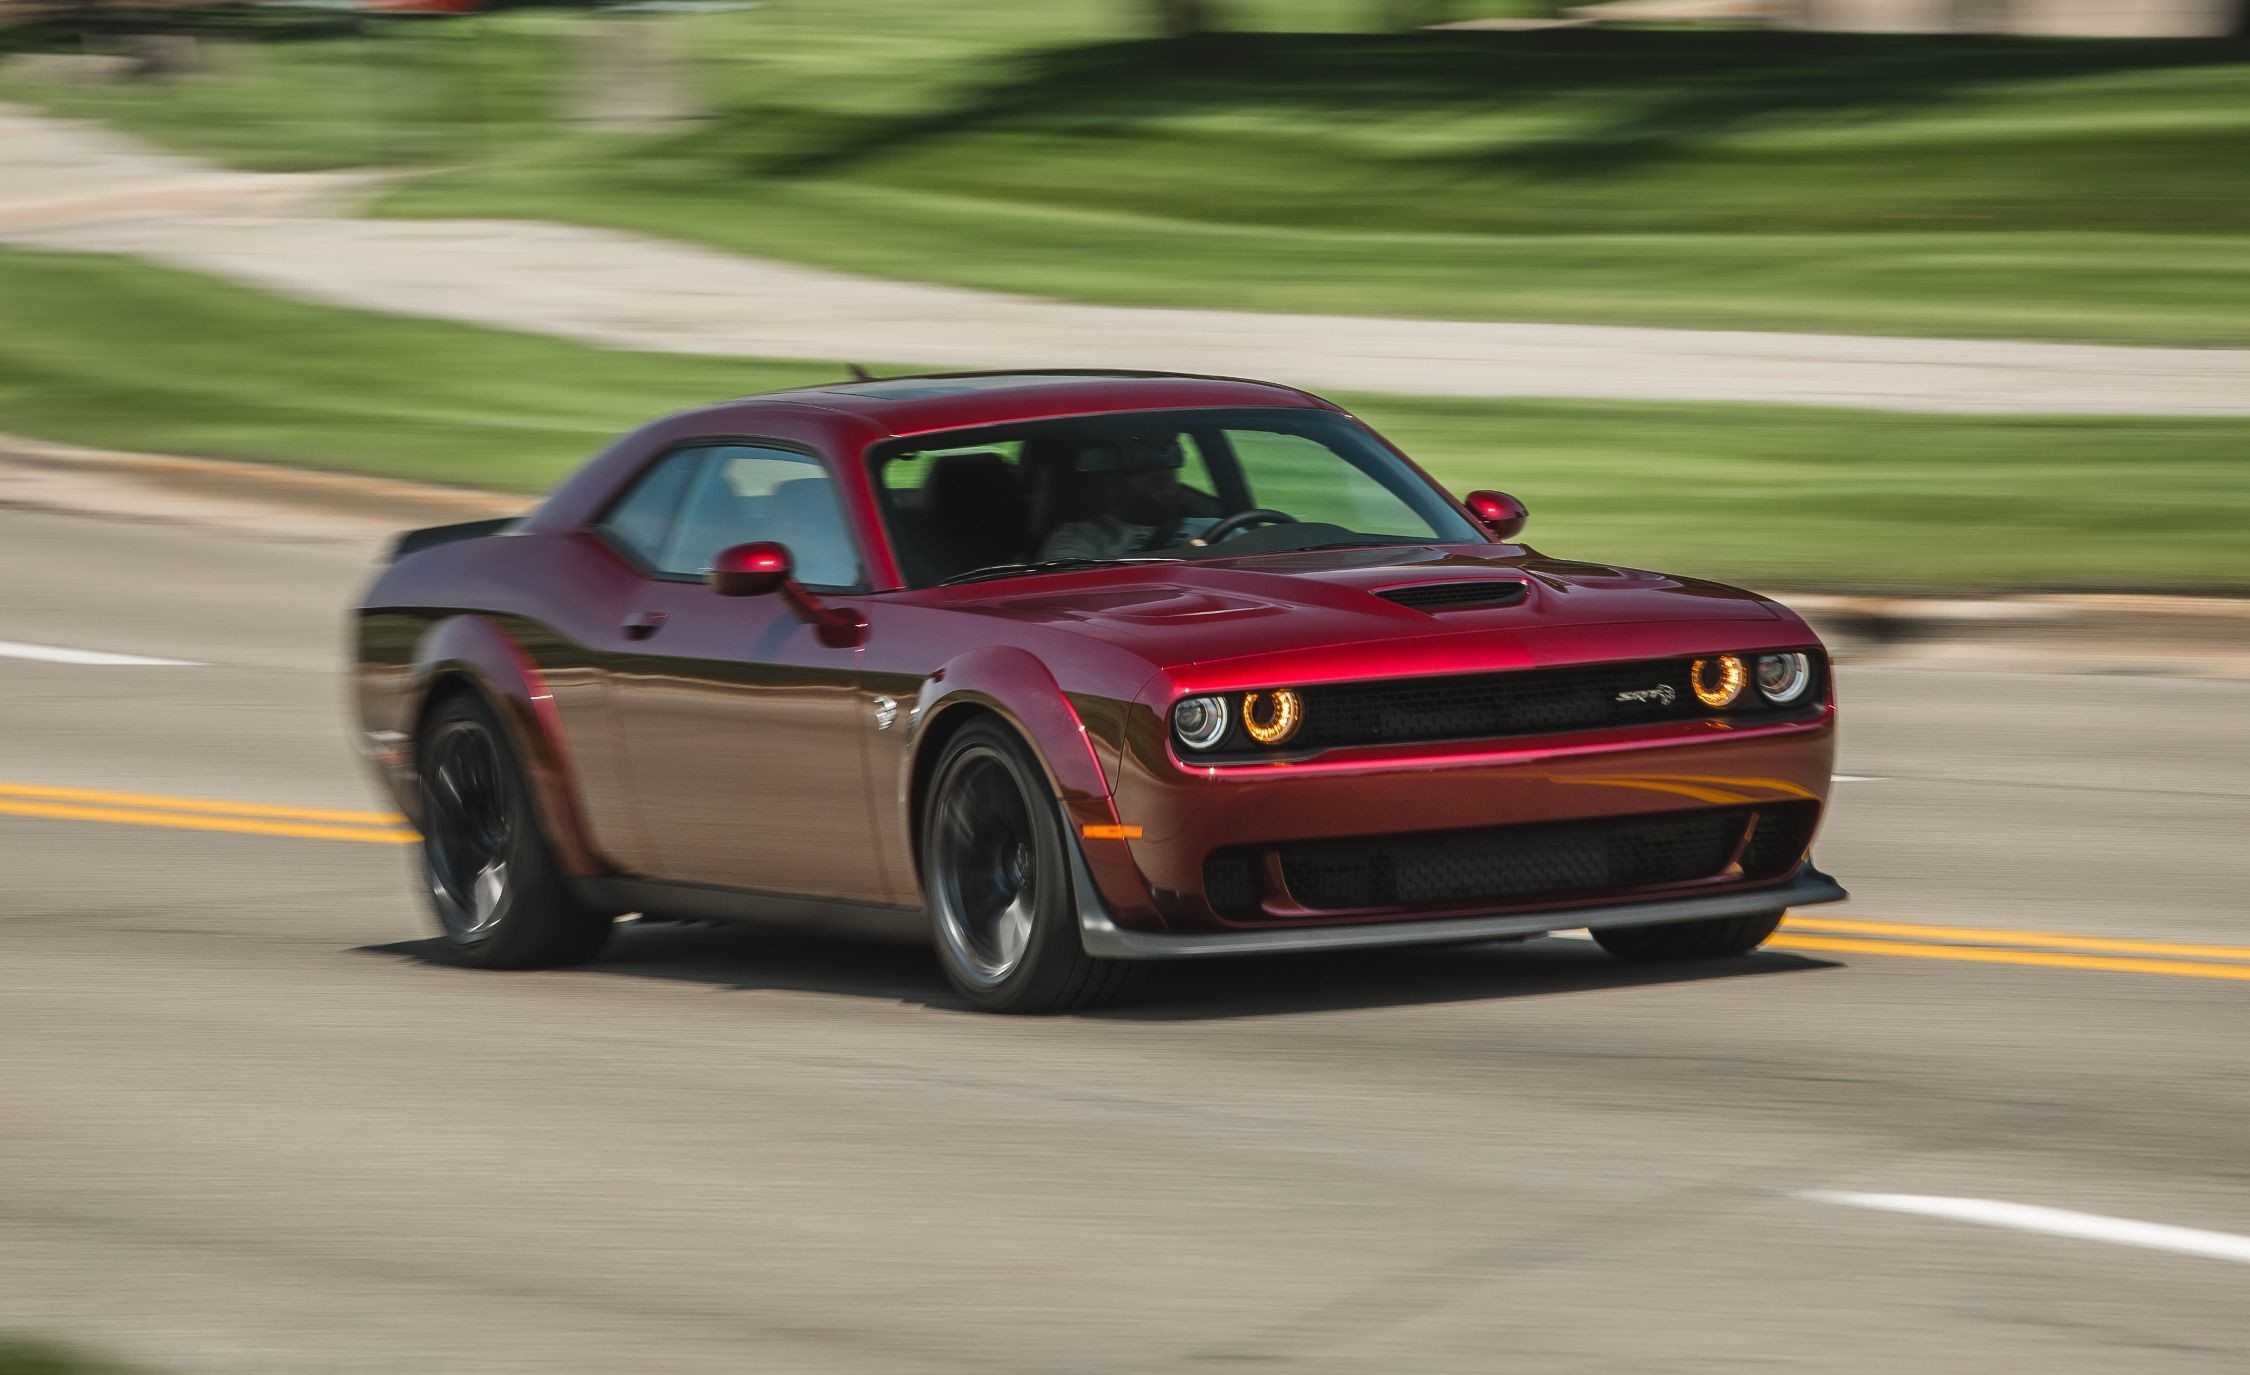 2250x1375 View in gallery 2018 Dodge Challenger SRT Hellcat Widebody (Color: Octane  Red) Front Three-Quarter